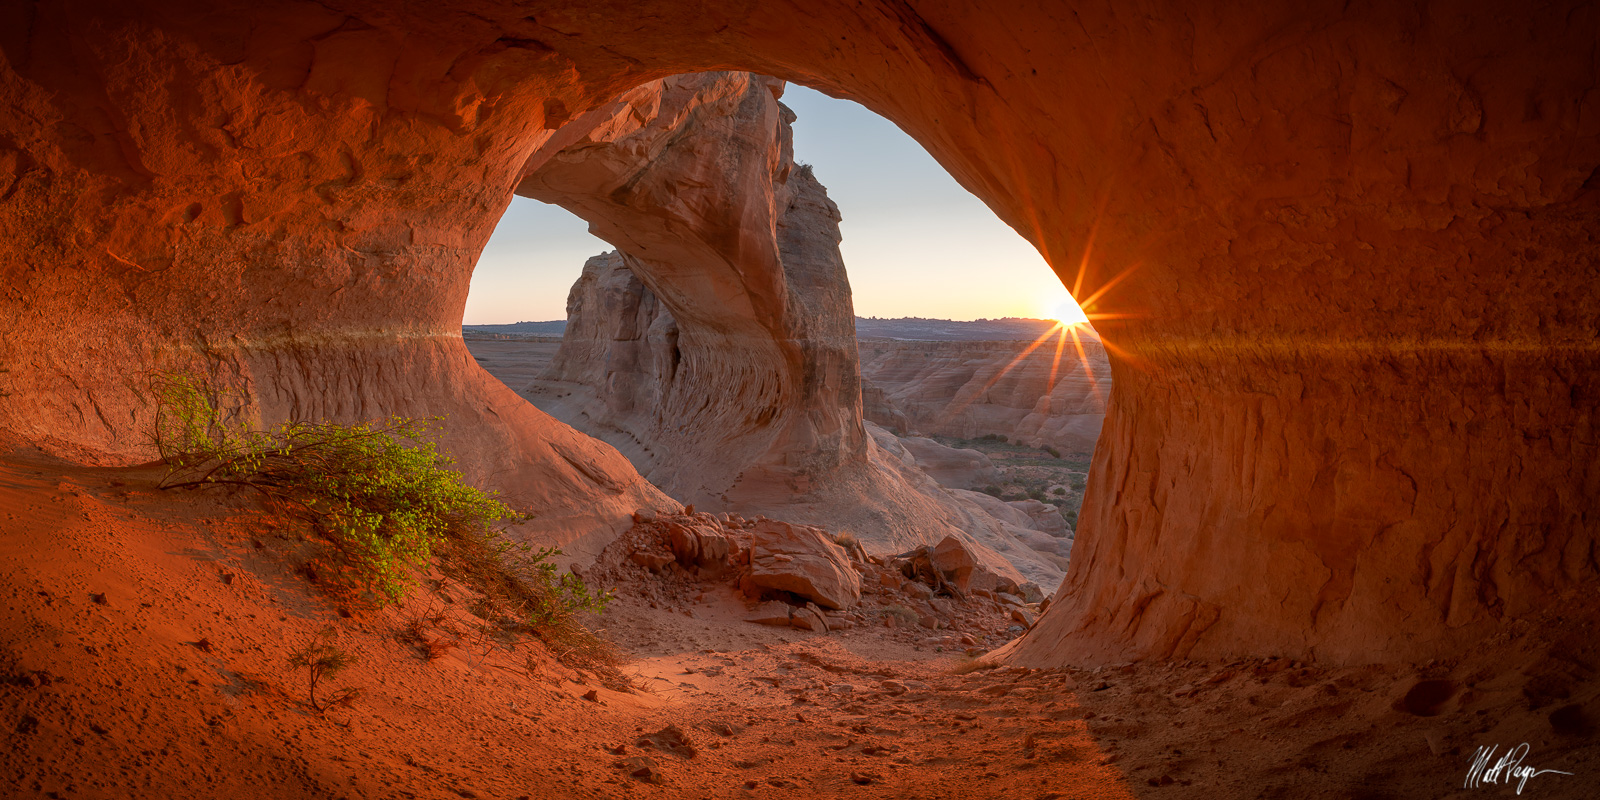 This rarely photographed arch is found near Arches National Park and Moab, Utah. I waited until the last moment of sunset in...